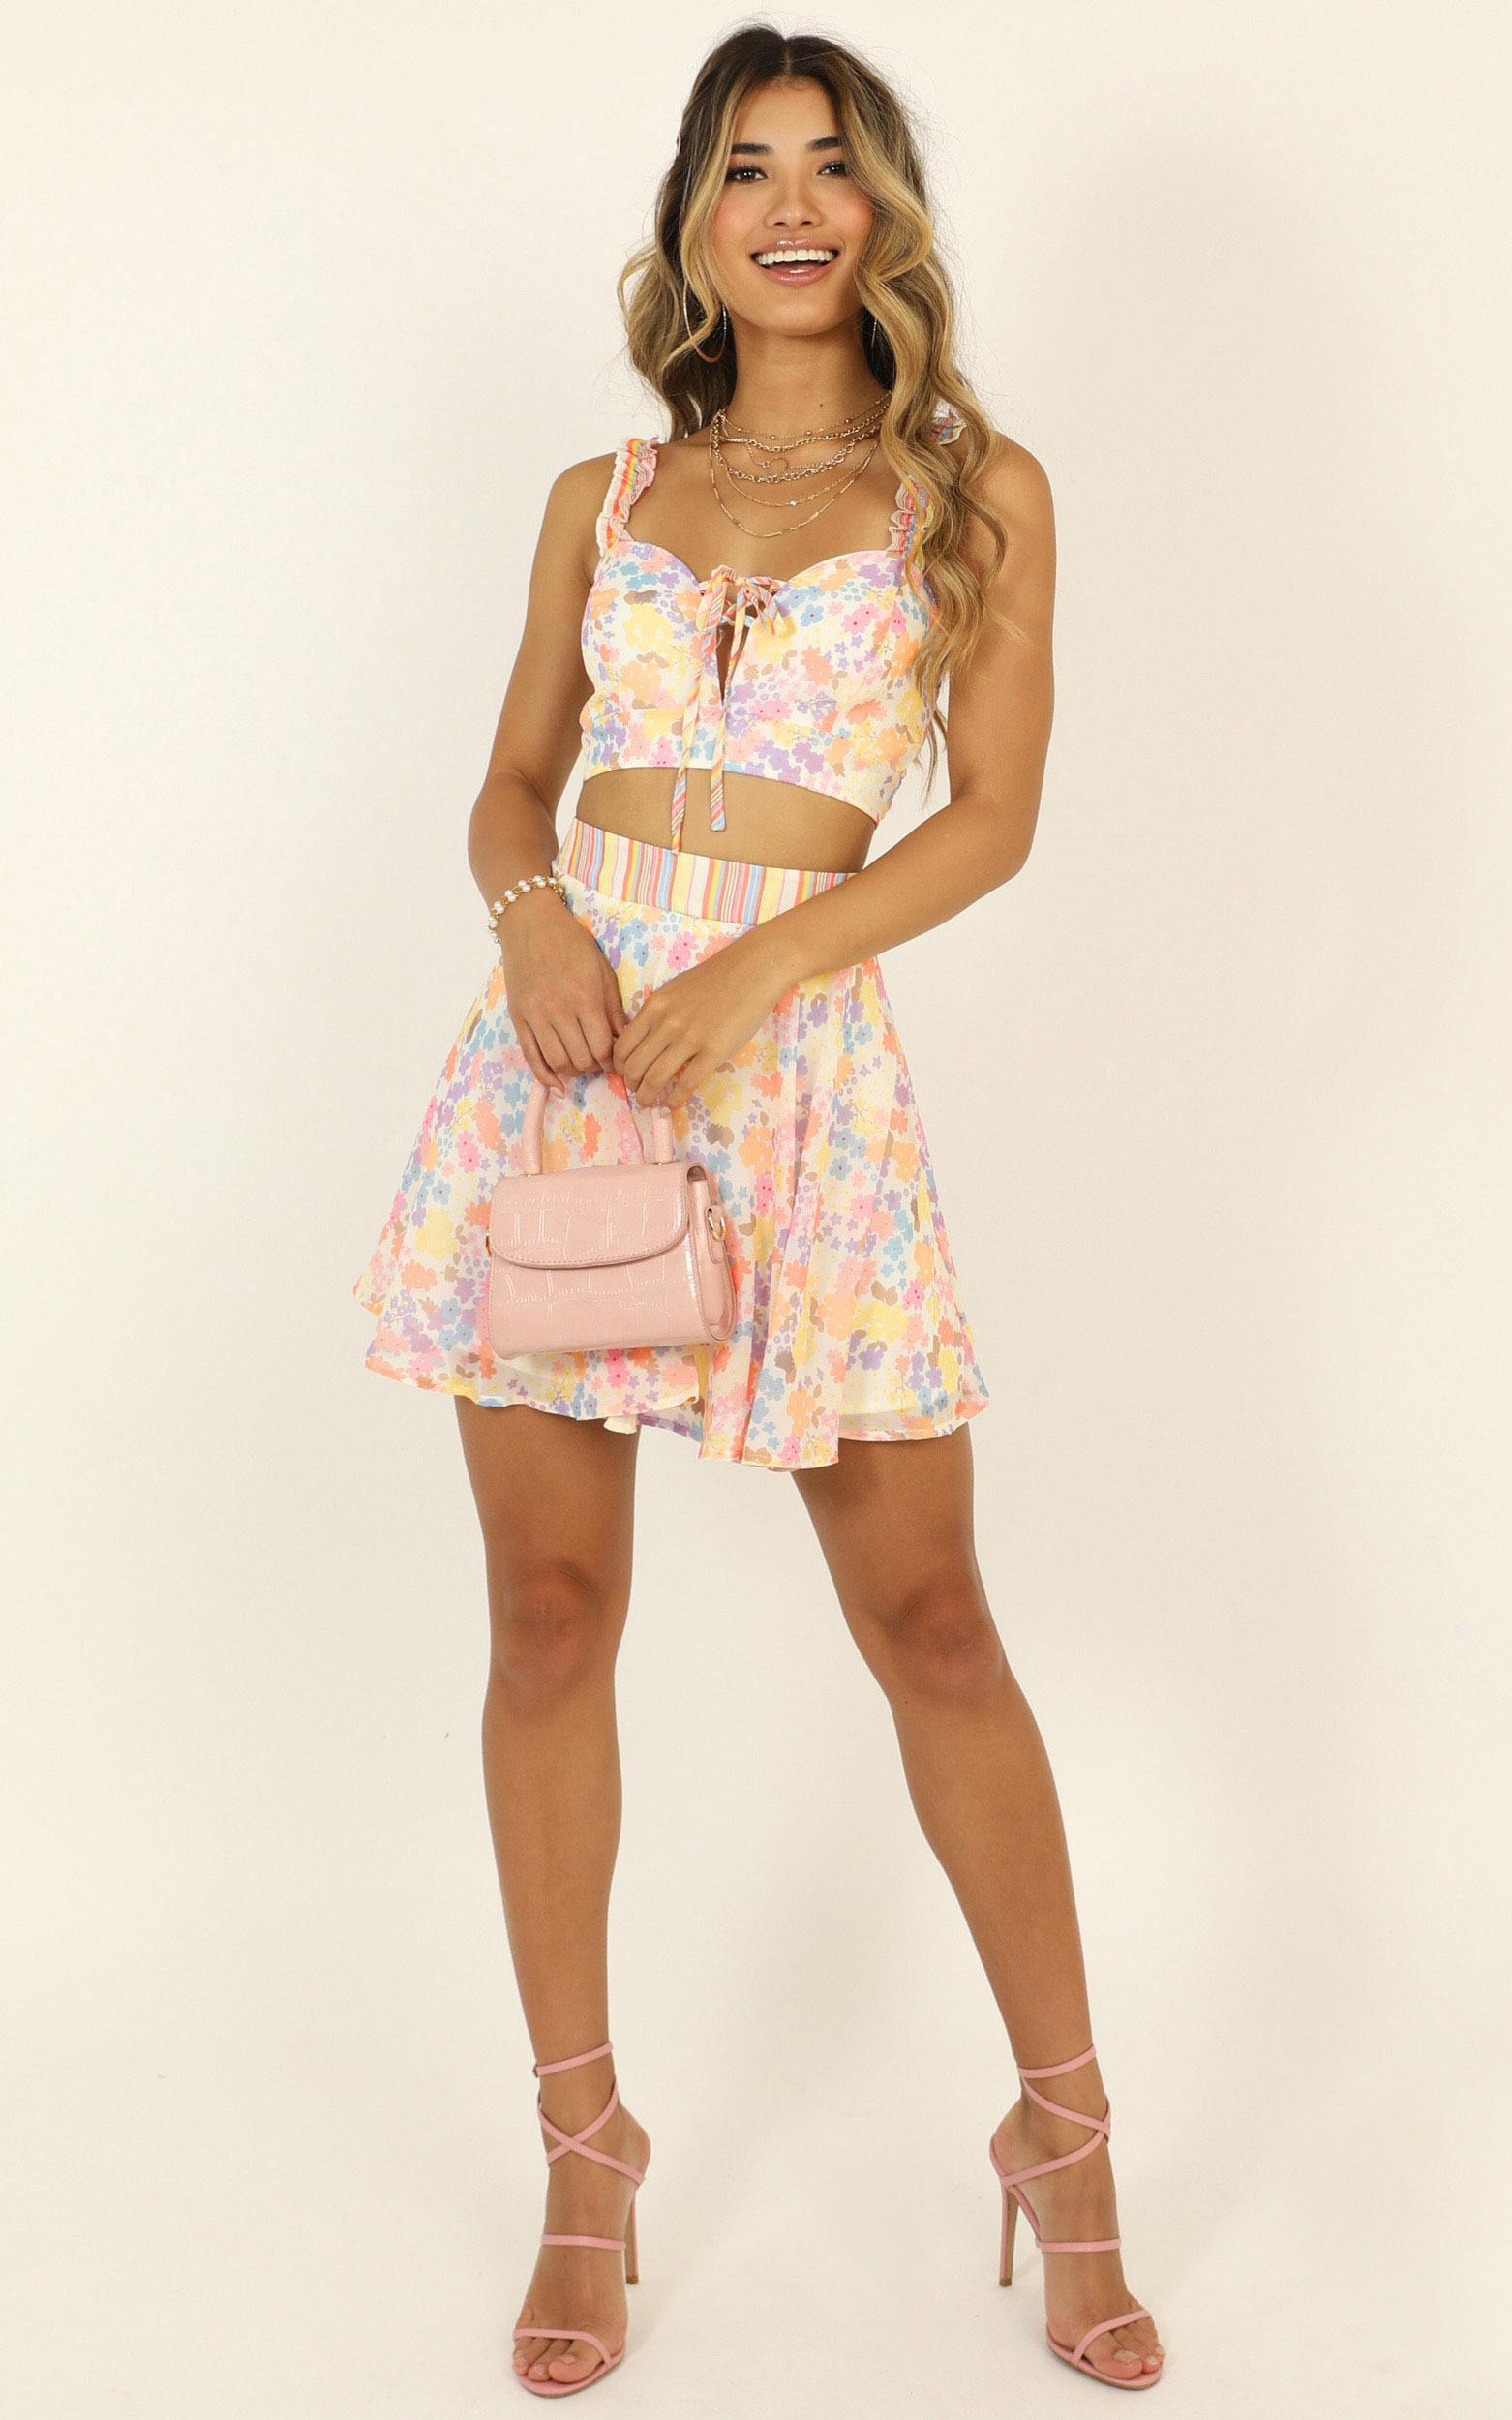 Kiss My Lips Two Piece Set in multi floral stripe - 14 (XL), MLT1, hi-res image number null